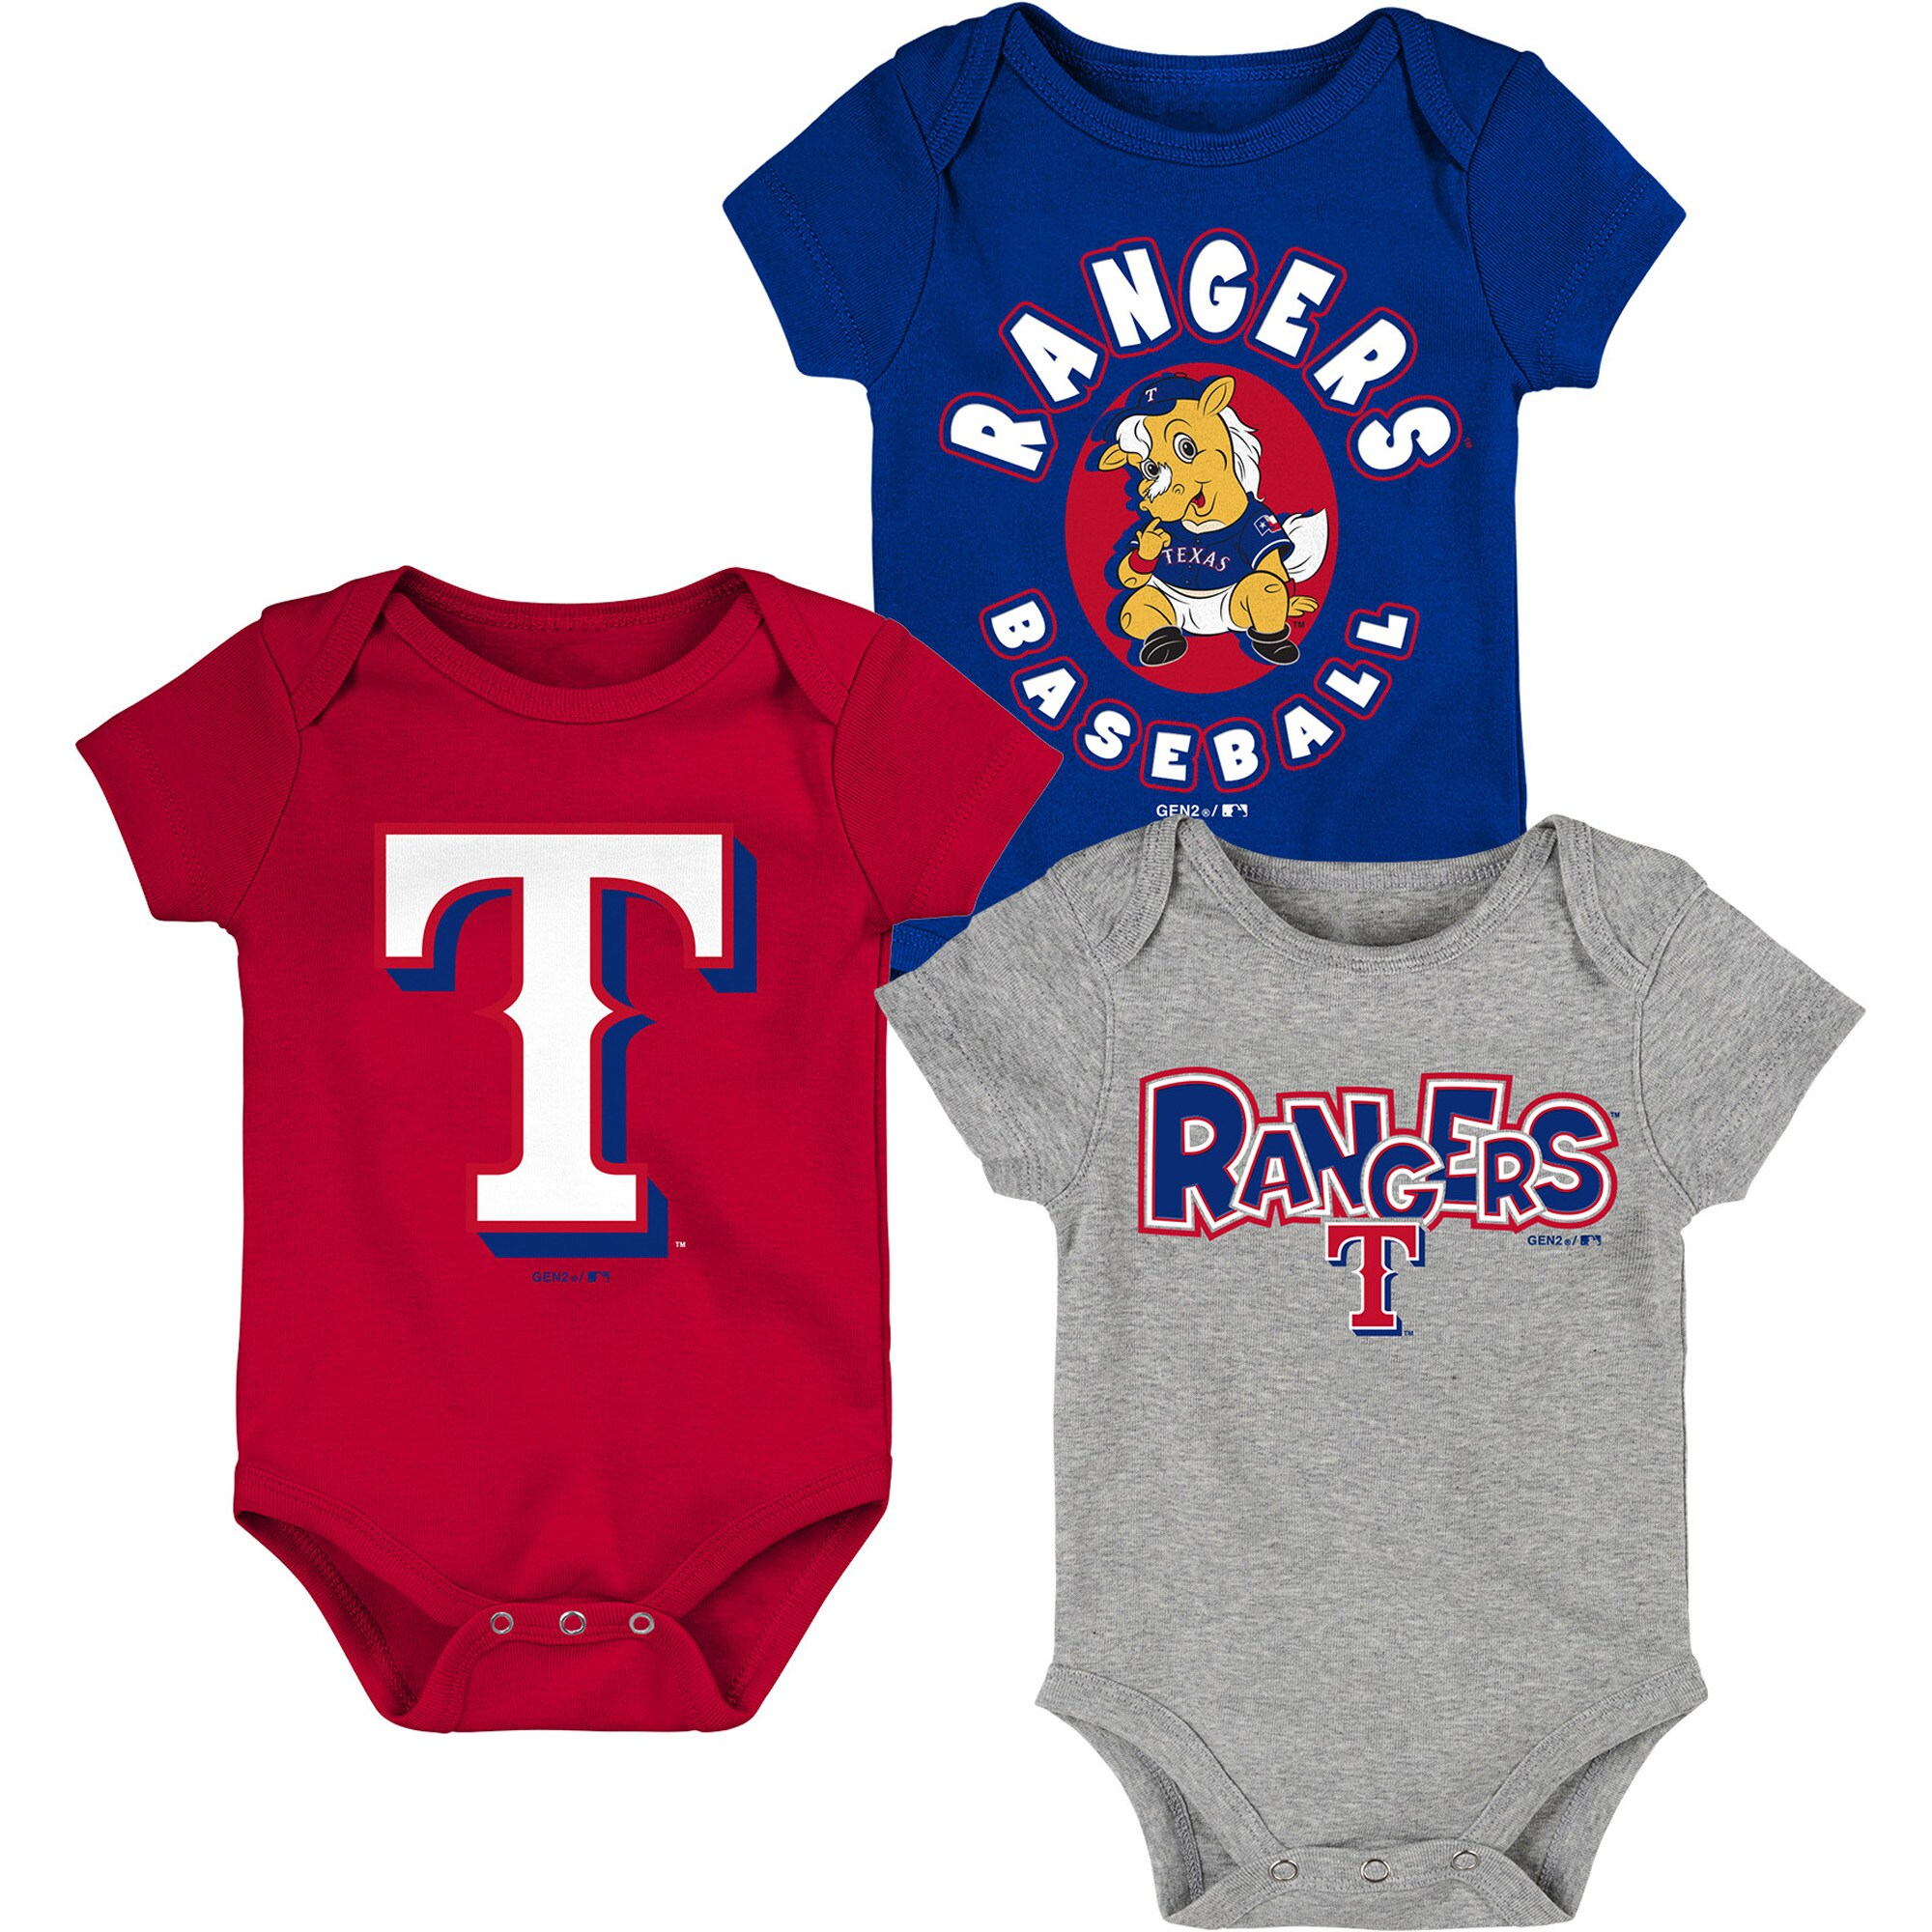 Texas Rangers Infant Everyday Fan Three-Pack Bodysuit Set - Royal/Red/Gray